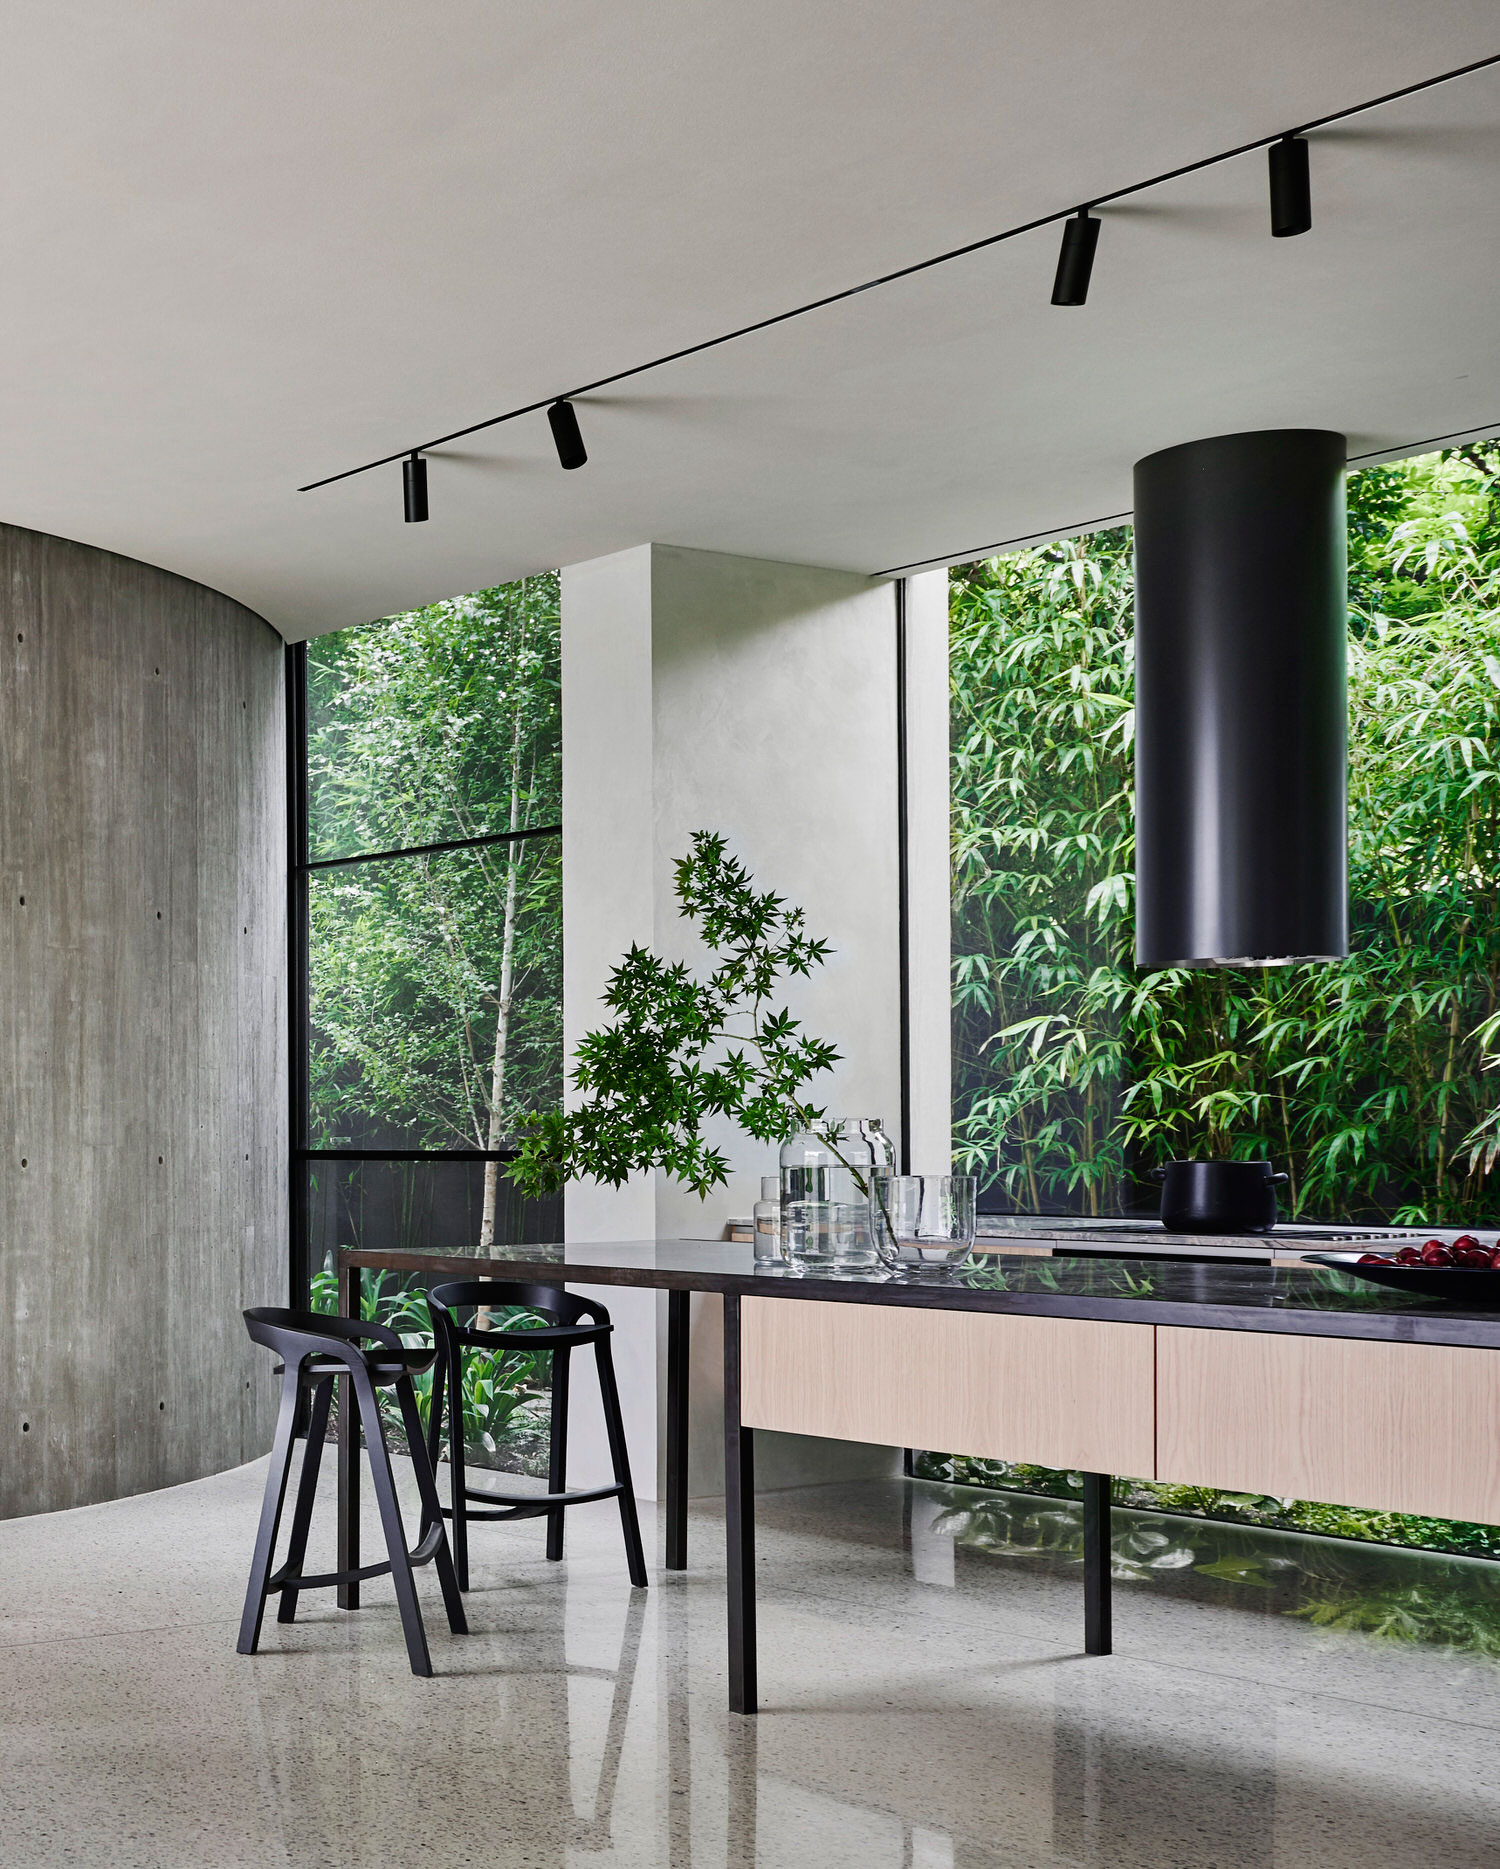 Twig House by Leeton Pointon Architects + Interiors with Allison Pye Interiors, Photo Lisa Cohen | Yellowtrace